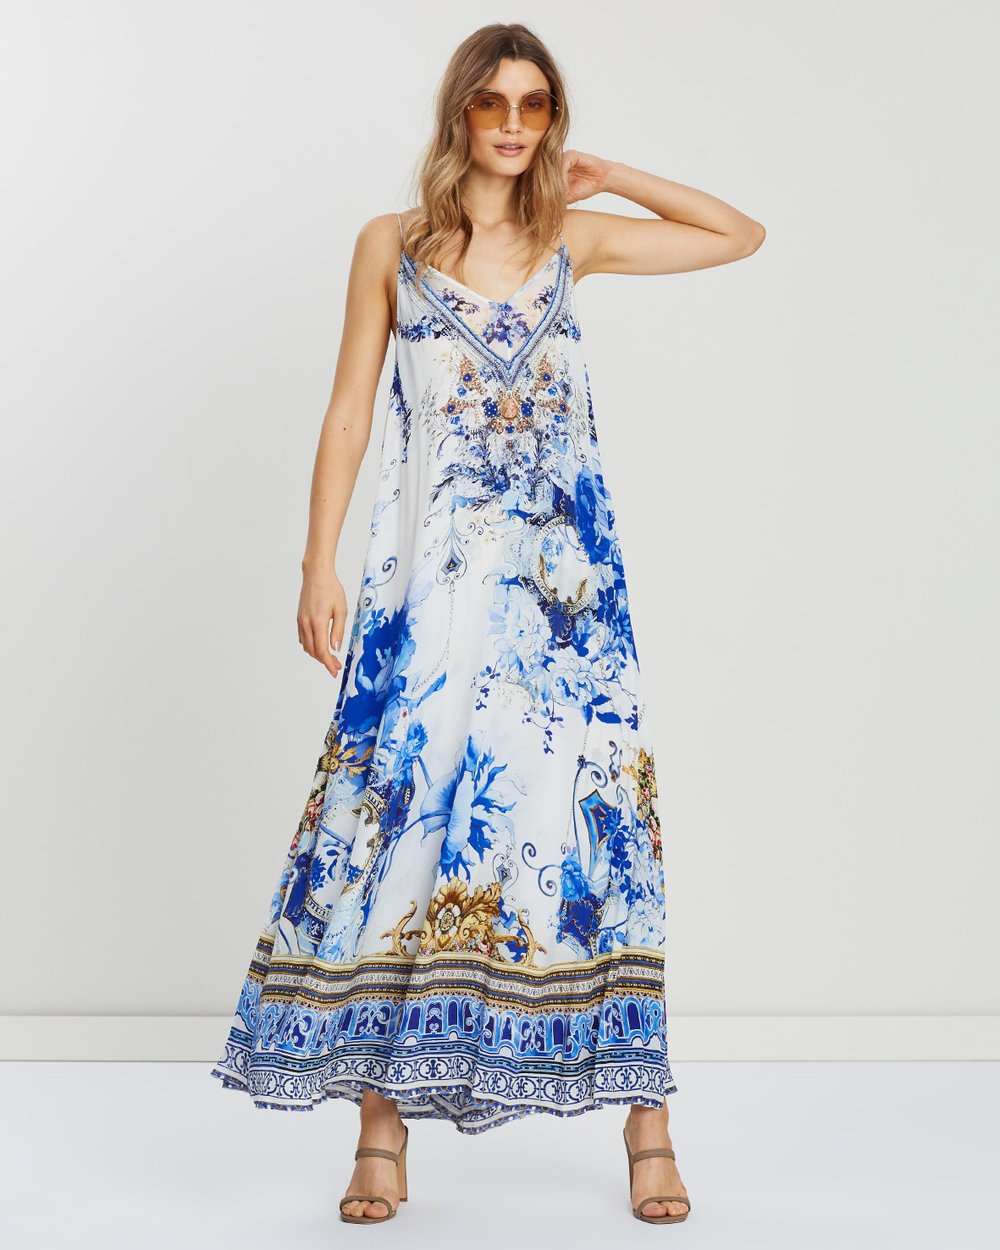 b537aaf507e Long Dress With Sheer Underlay by Camilla Online